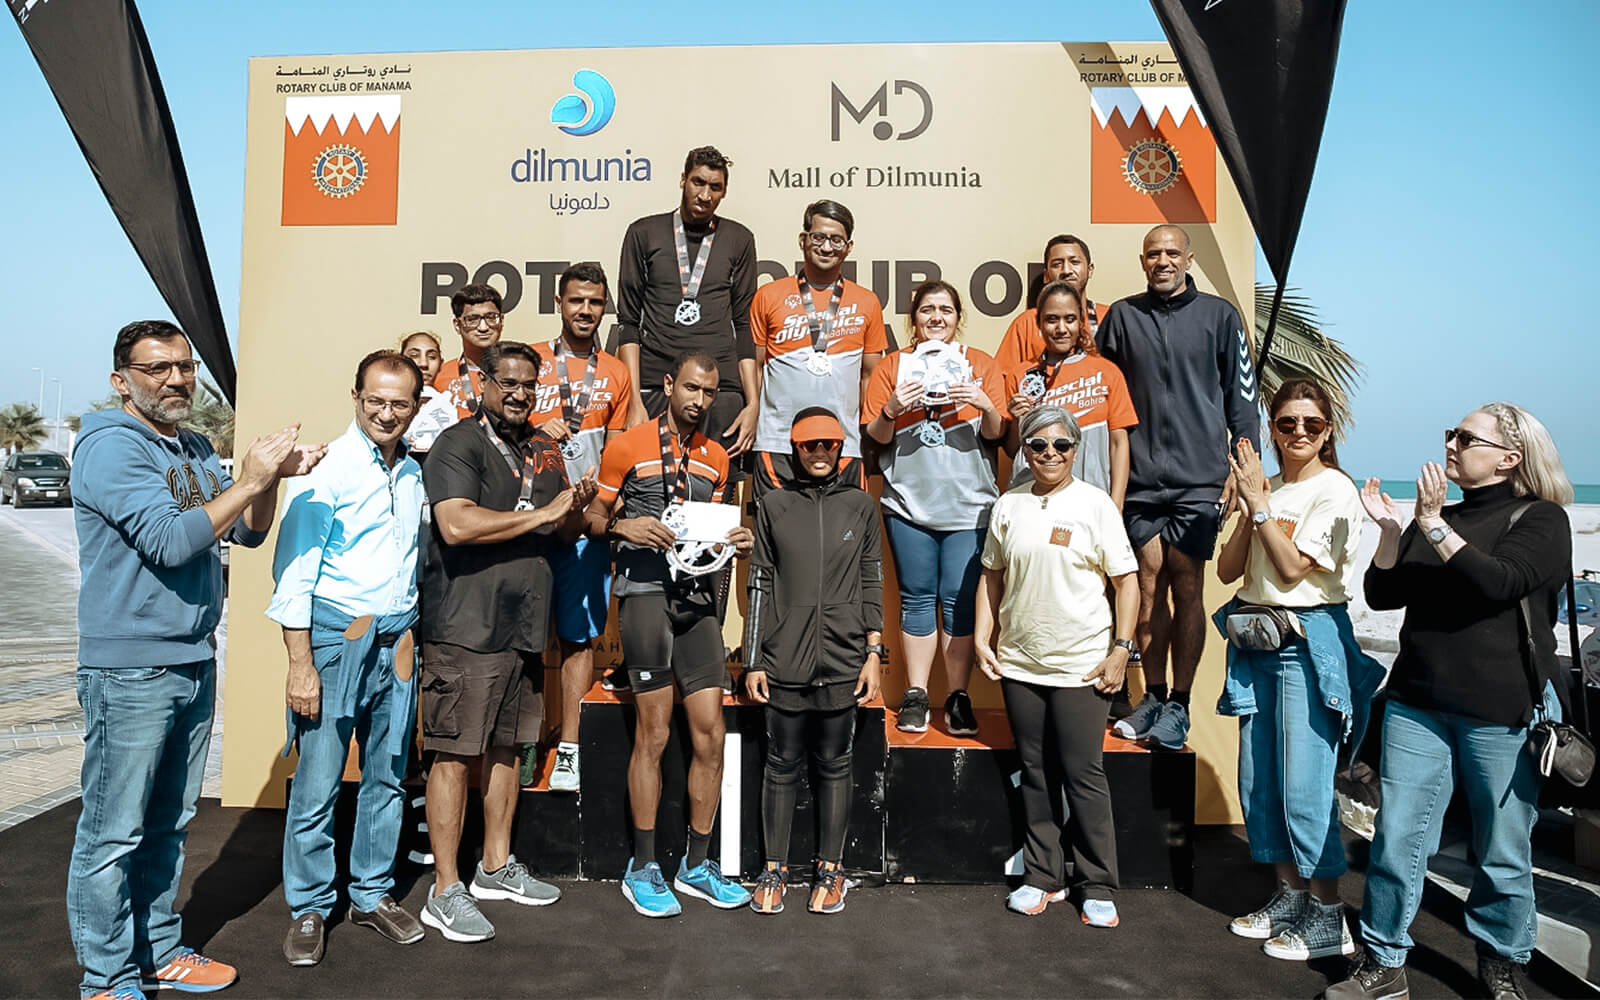 Mall of Dilmunia sponsors the Duathlon event at Dilmunia Island